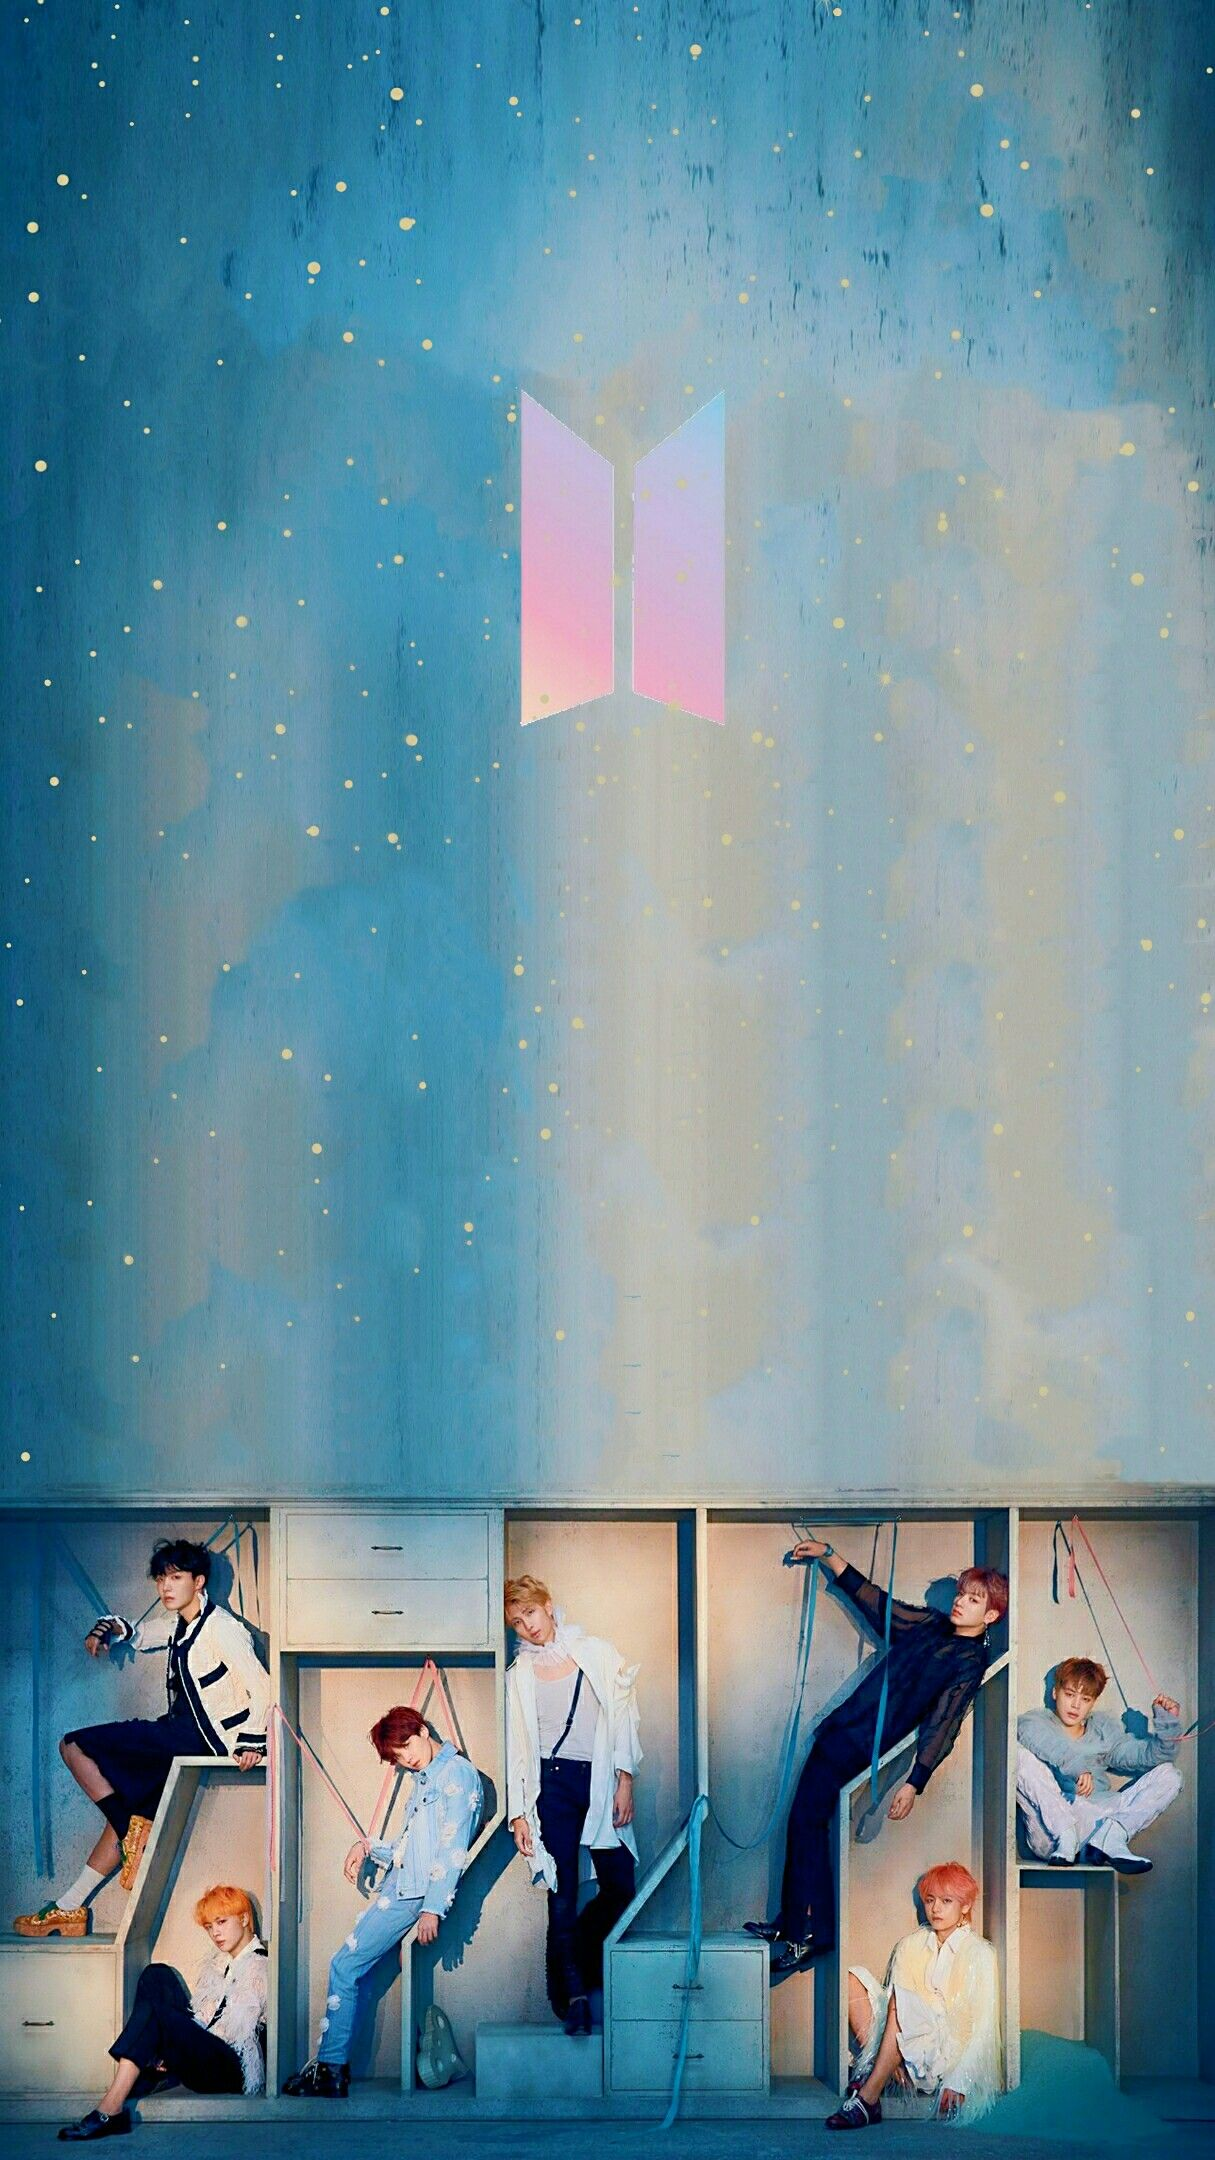 free download bts edits bts wallpapers bts love yourself answer concept 1215x2160 for your desktop mobile tablet explore 29 bts love yourself answer wallpapers bts love yourself answer wallpapers free download bts edits bts wallpapers